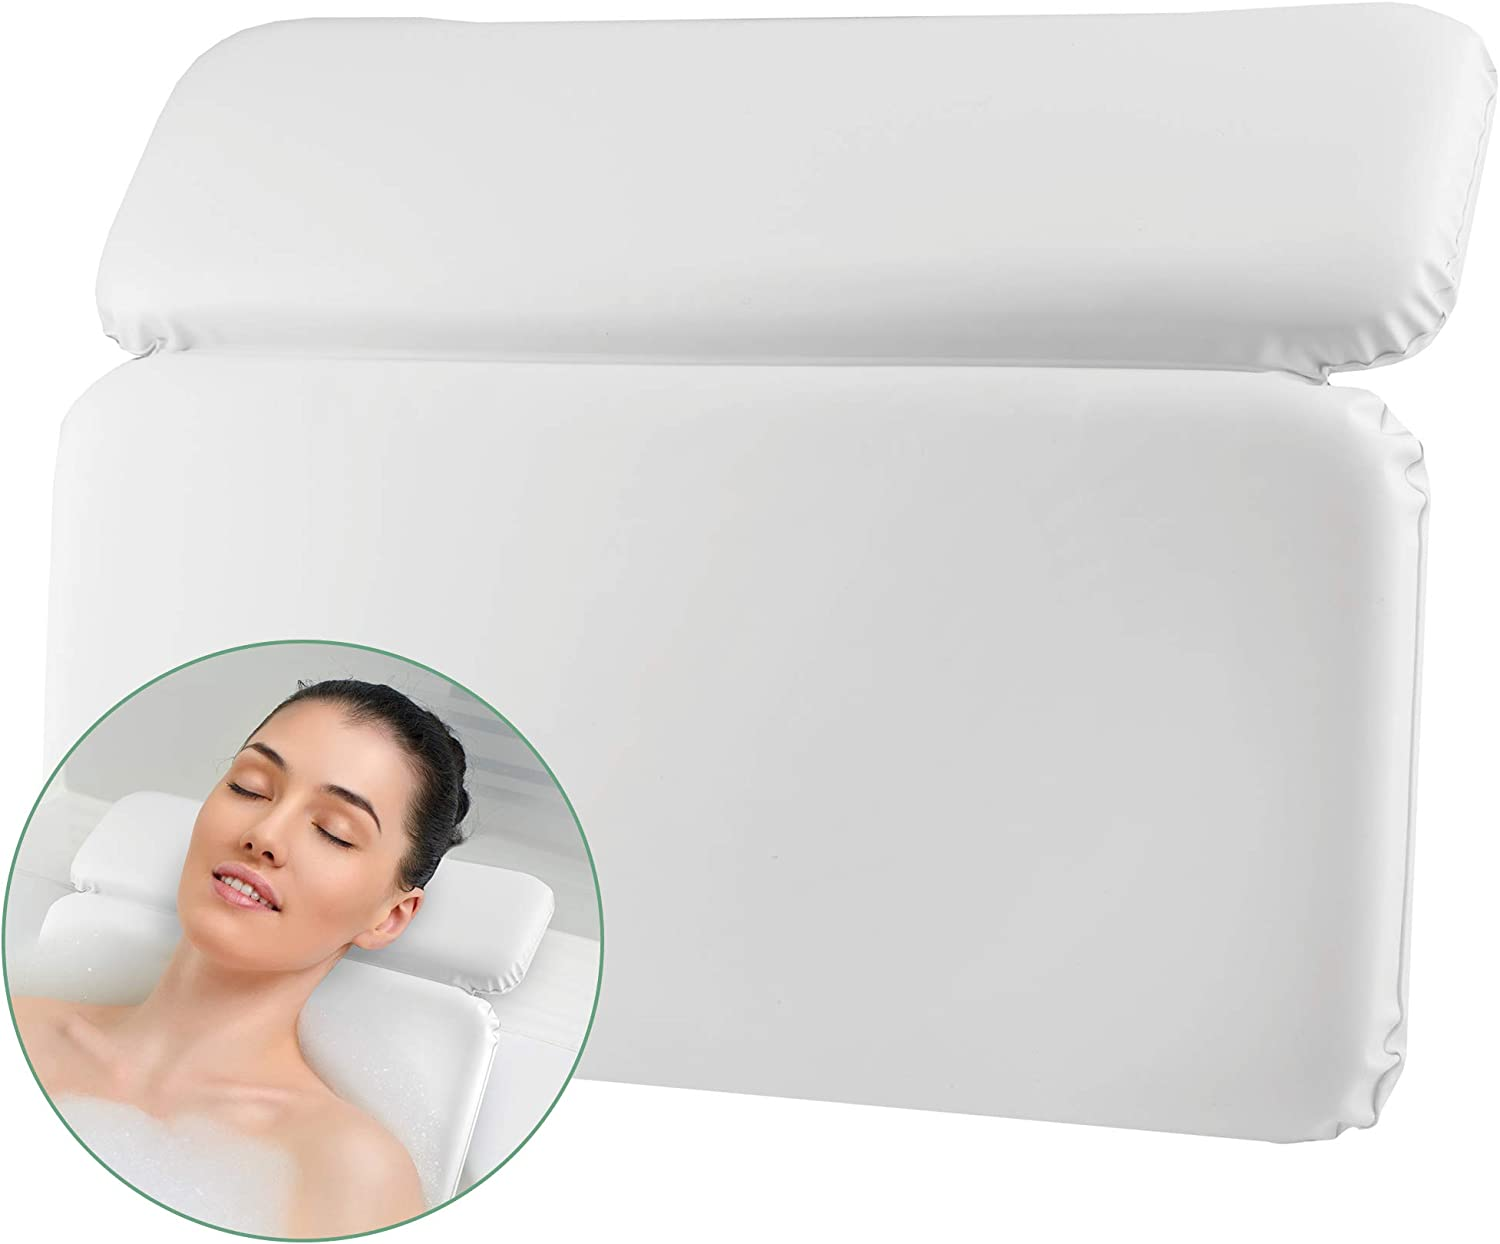 Fashionable Richards 2 Panel Spa Bath Sho Dual-Padded Pillow-Luxurious Neck Manufacturer direct delivery